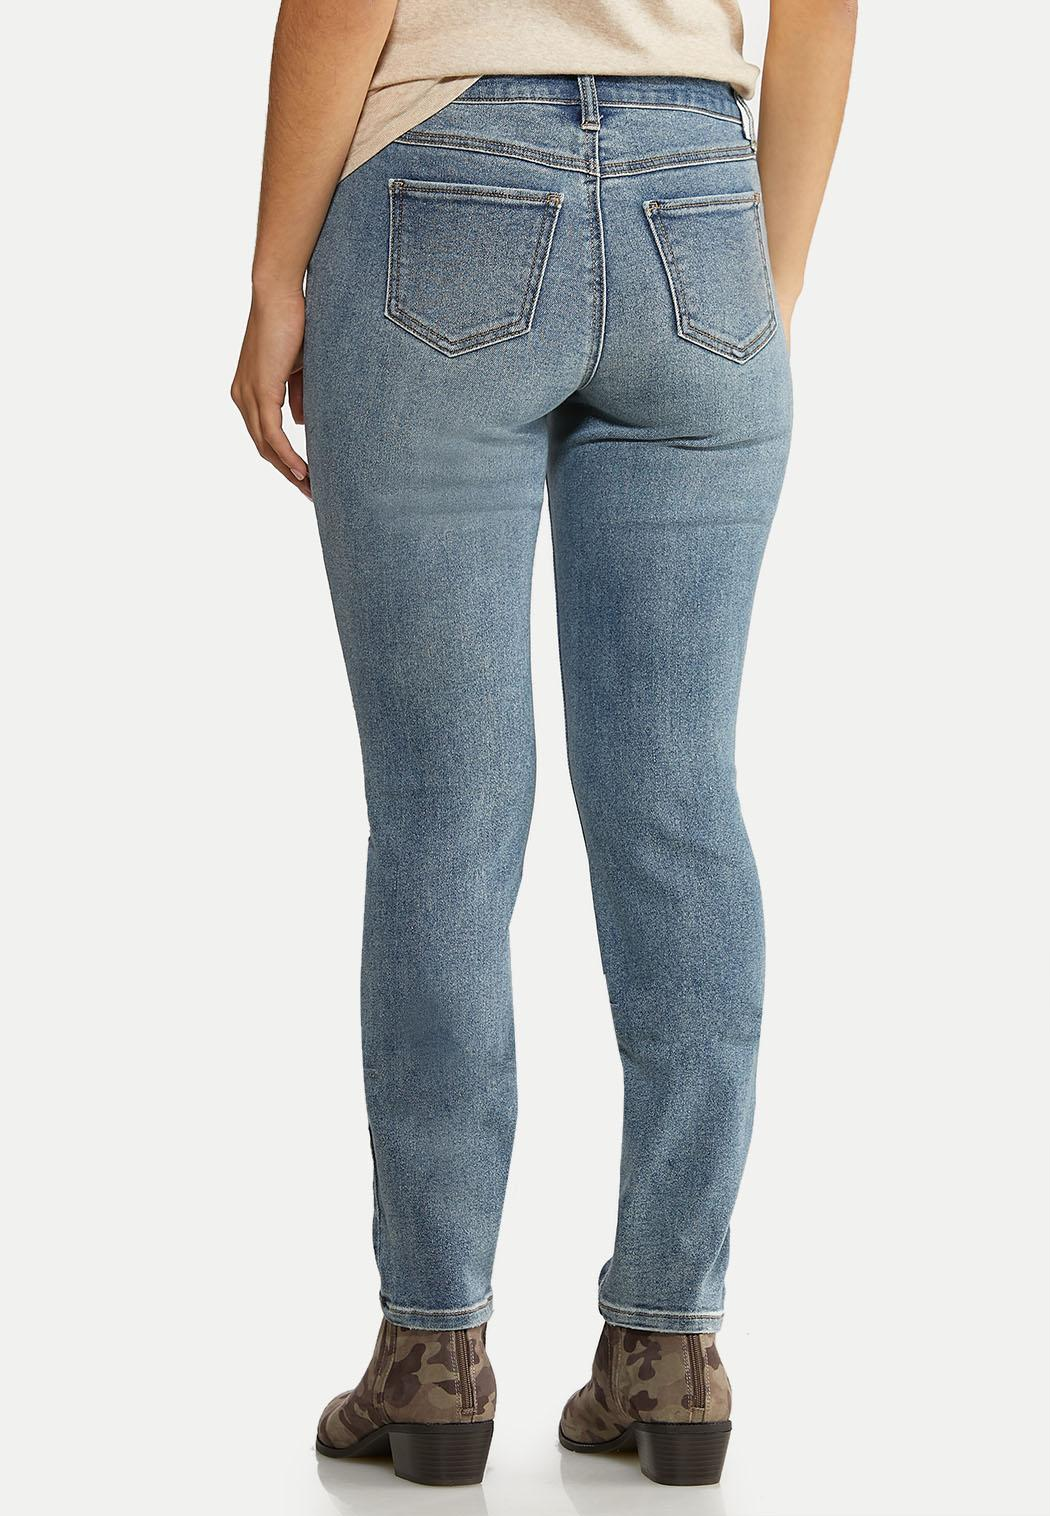 Distressed Buttonfly Jeans (Item #44023753)